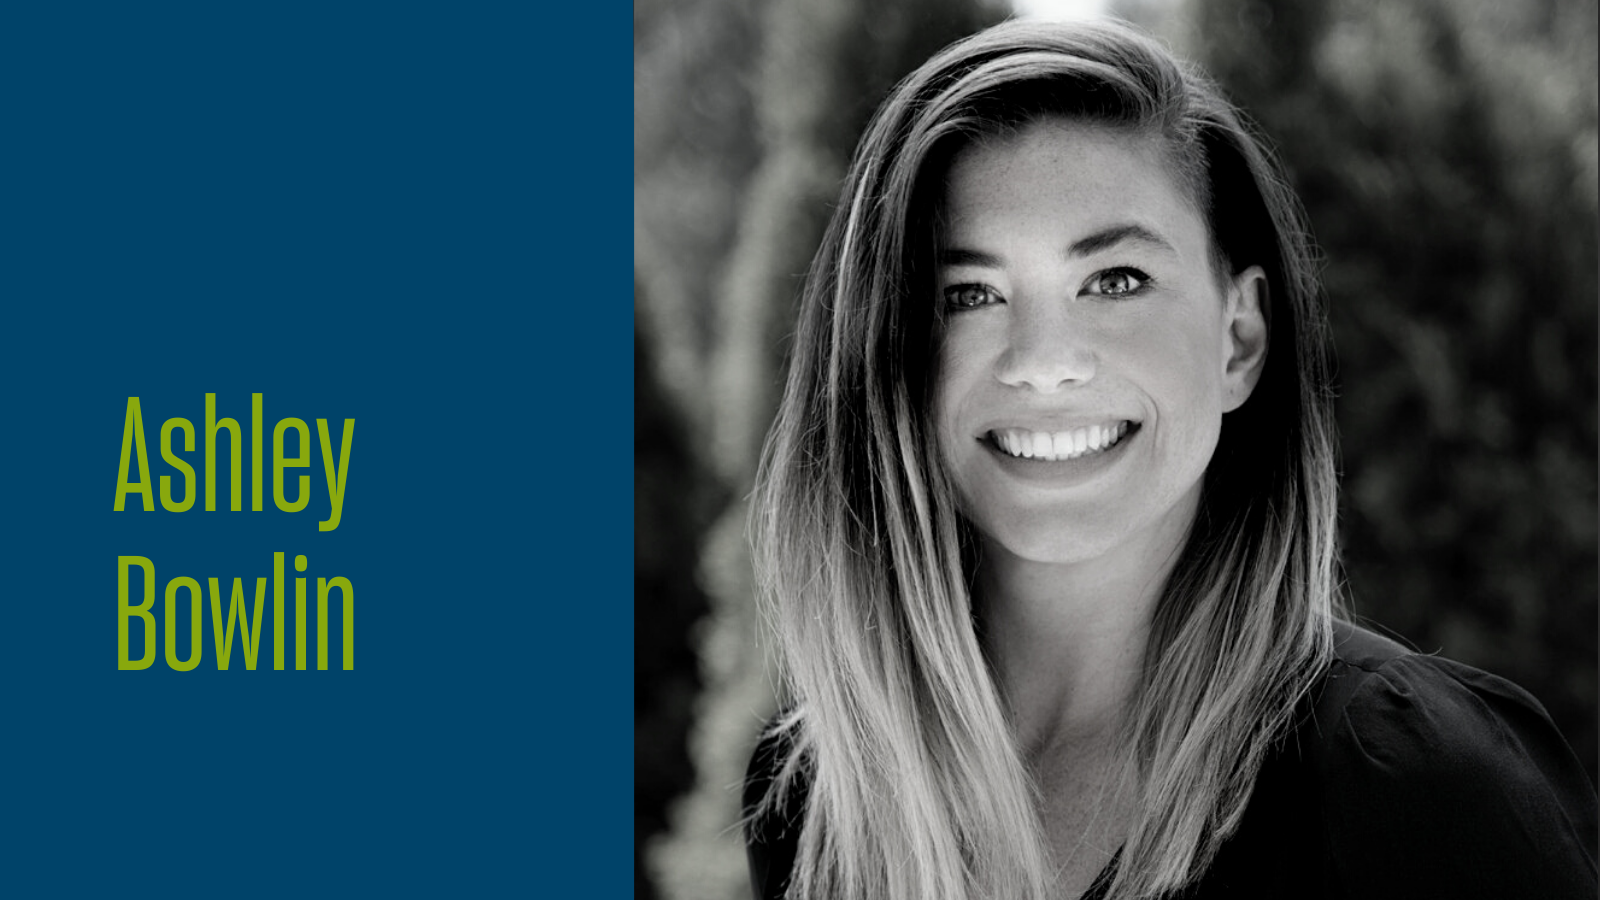 Episode 29: Recruiter Branding and an Omnichannel Staffing Approach with Ashley Bowlin